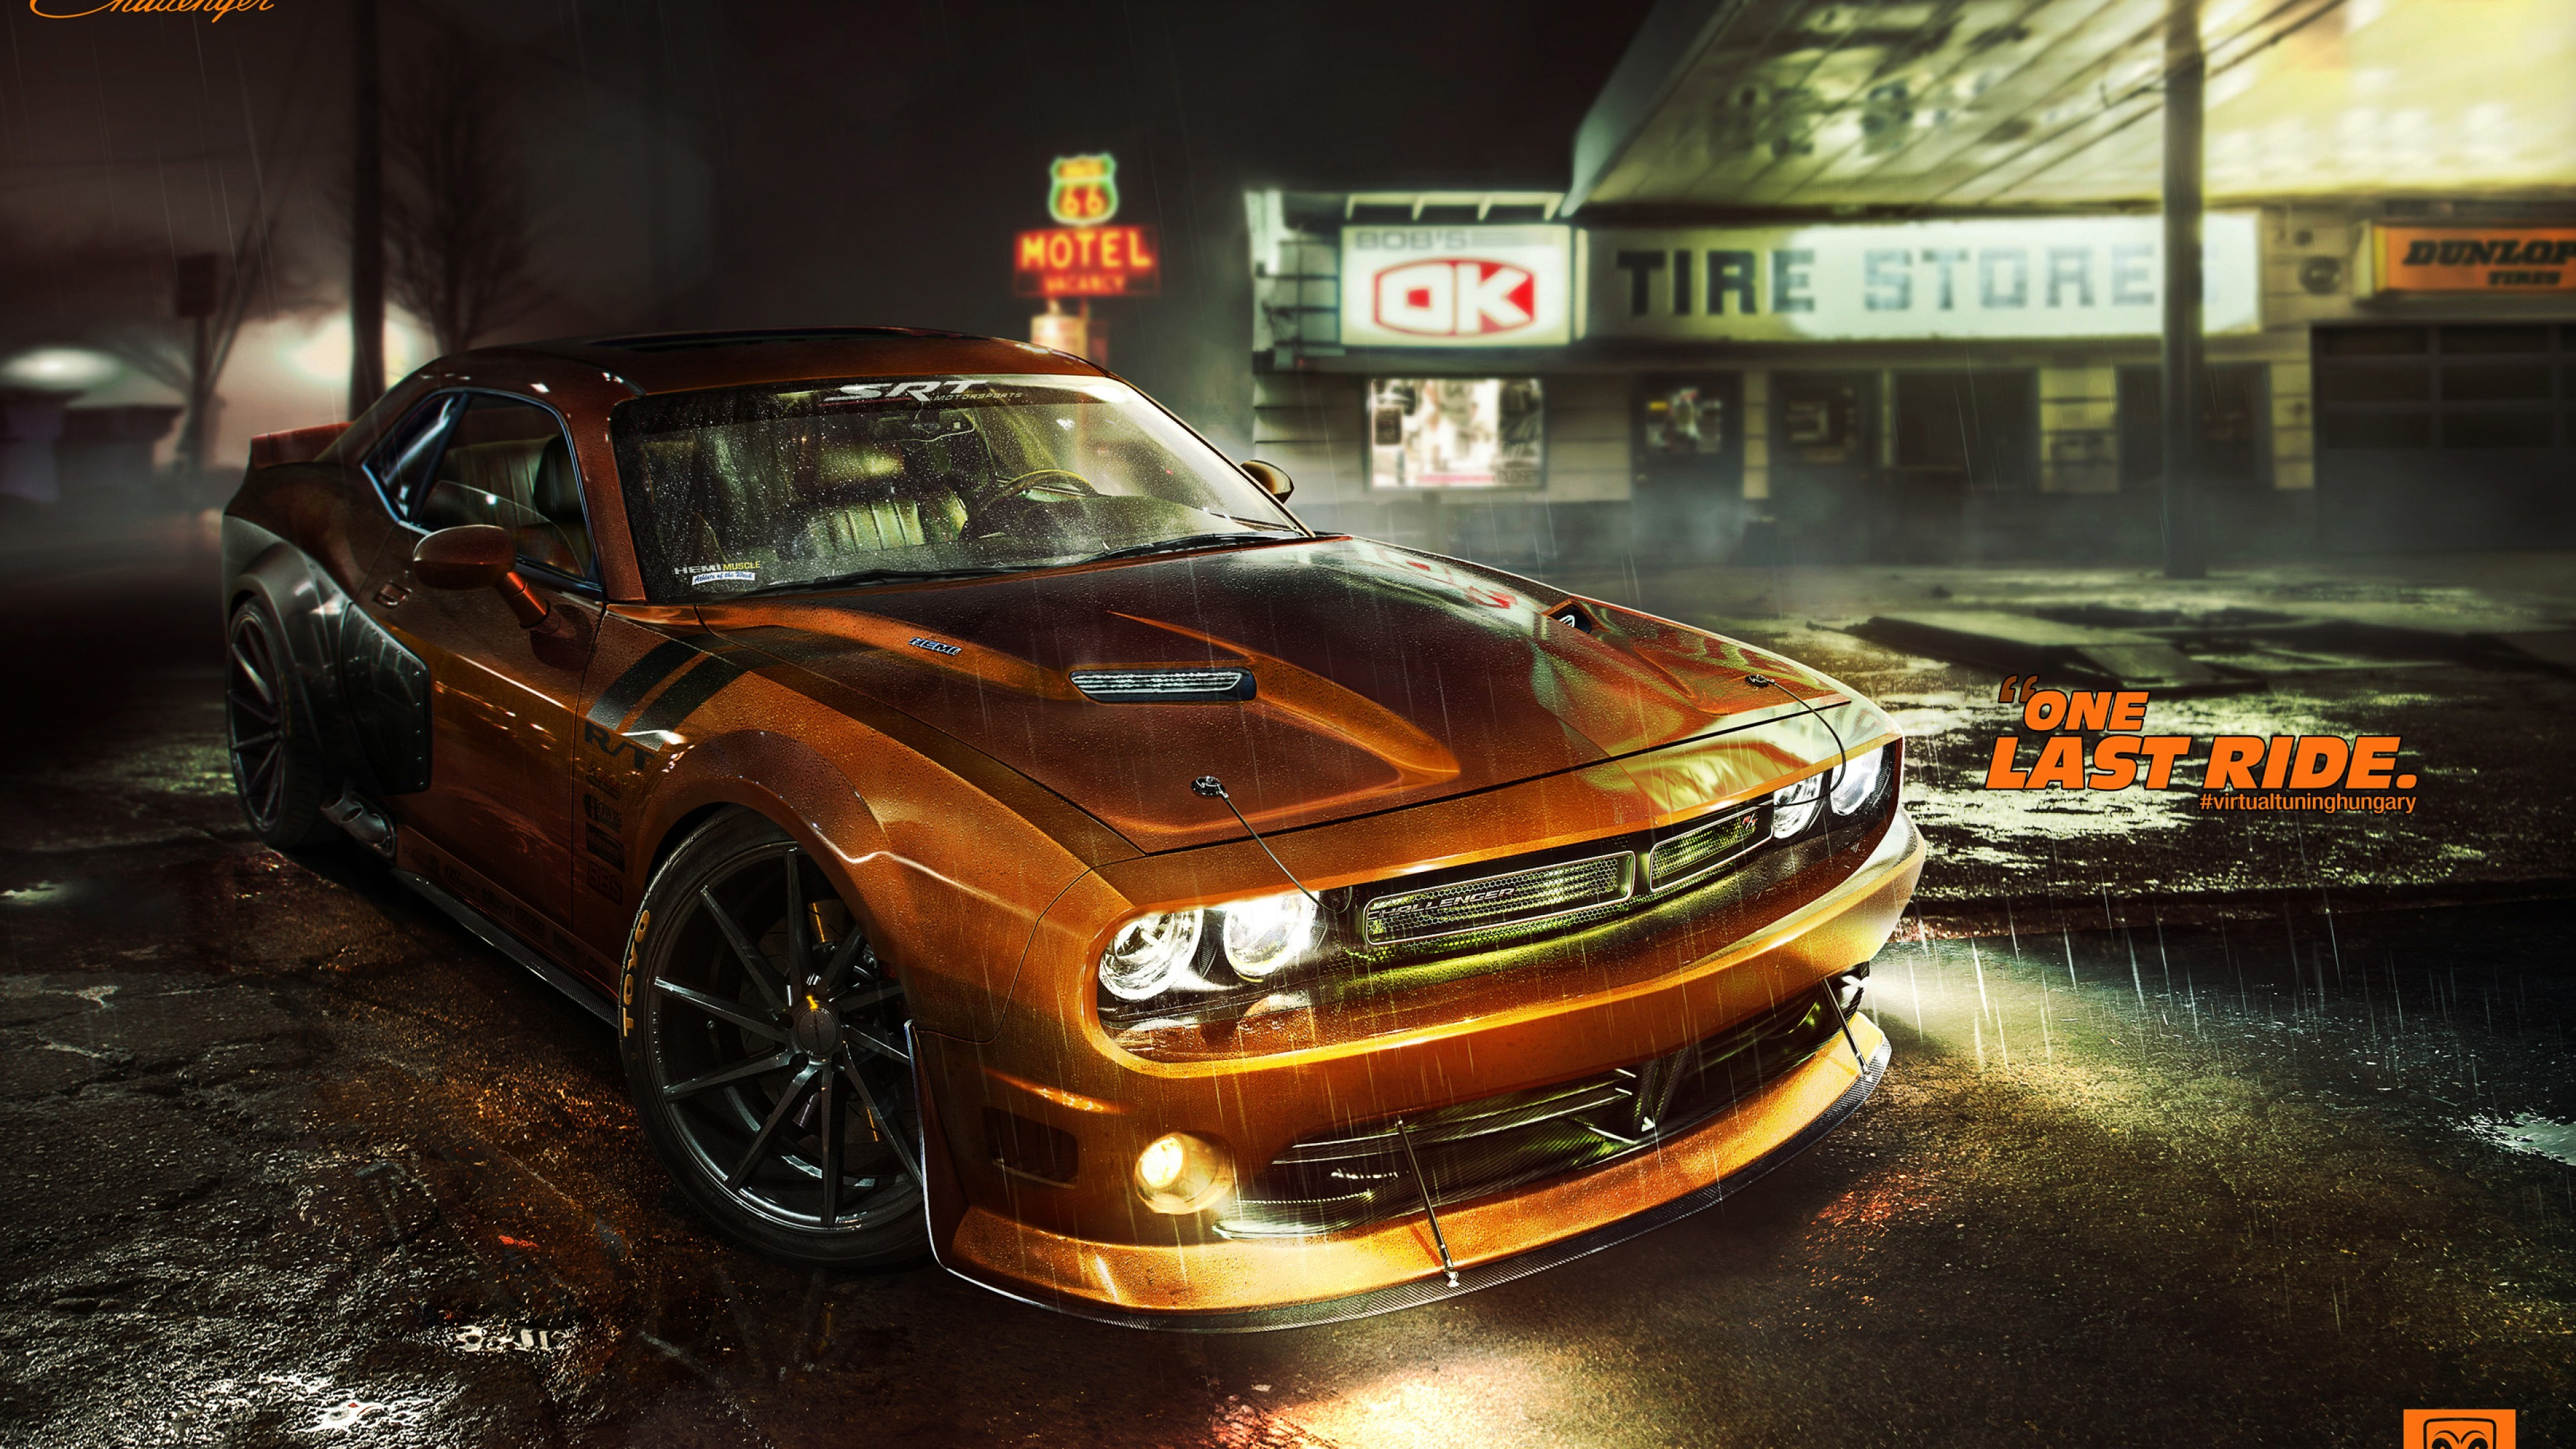 Dodge Challenger Rt Car Hd Wallpaper 4k Desktop Mobiles 3840x2160